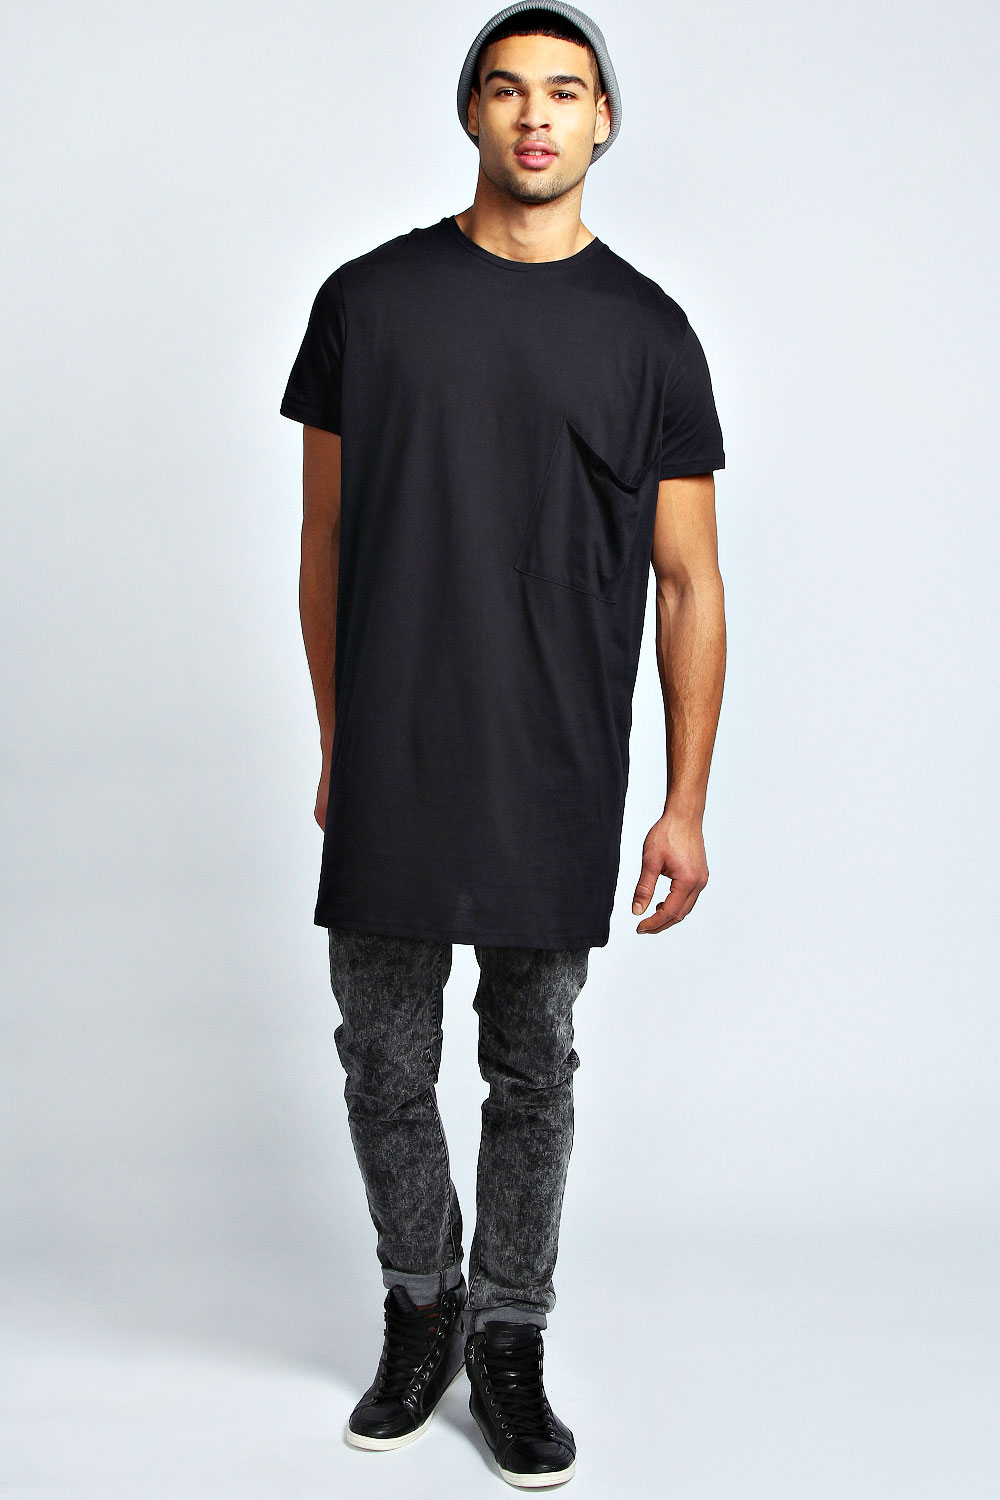 boohoo mens oversized pocket long line 100 cotton tee. Black Bedroom Furniture Sets. Home Design Ideas